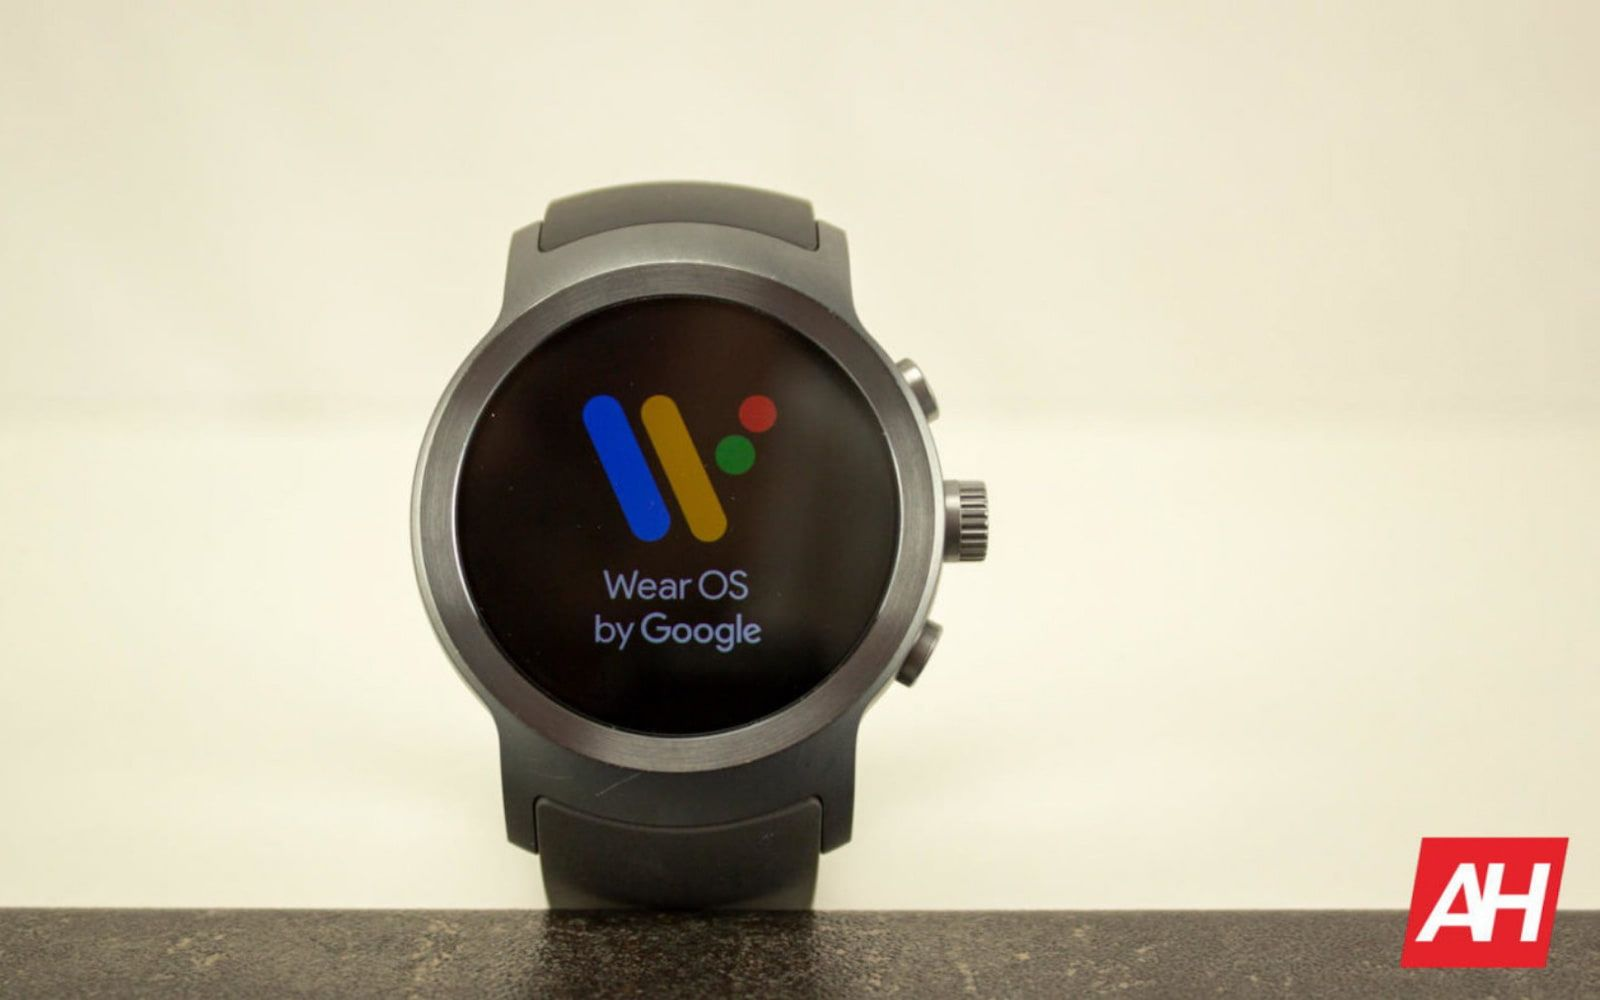 Wear OS 2.3 Begins Roll Out, Showing Minimal Effort From